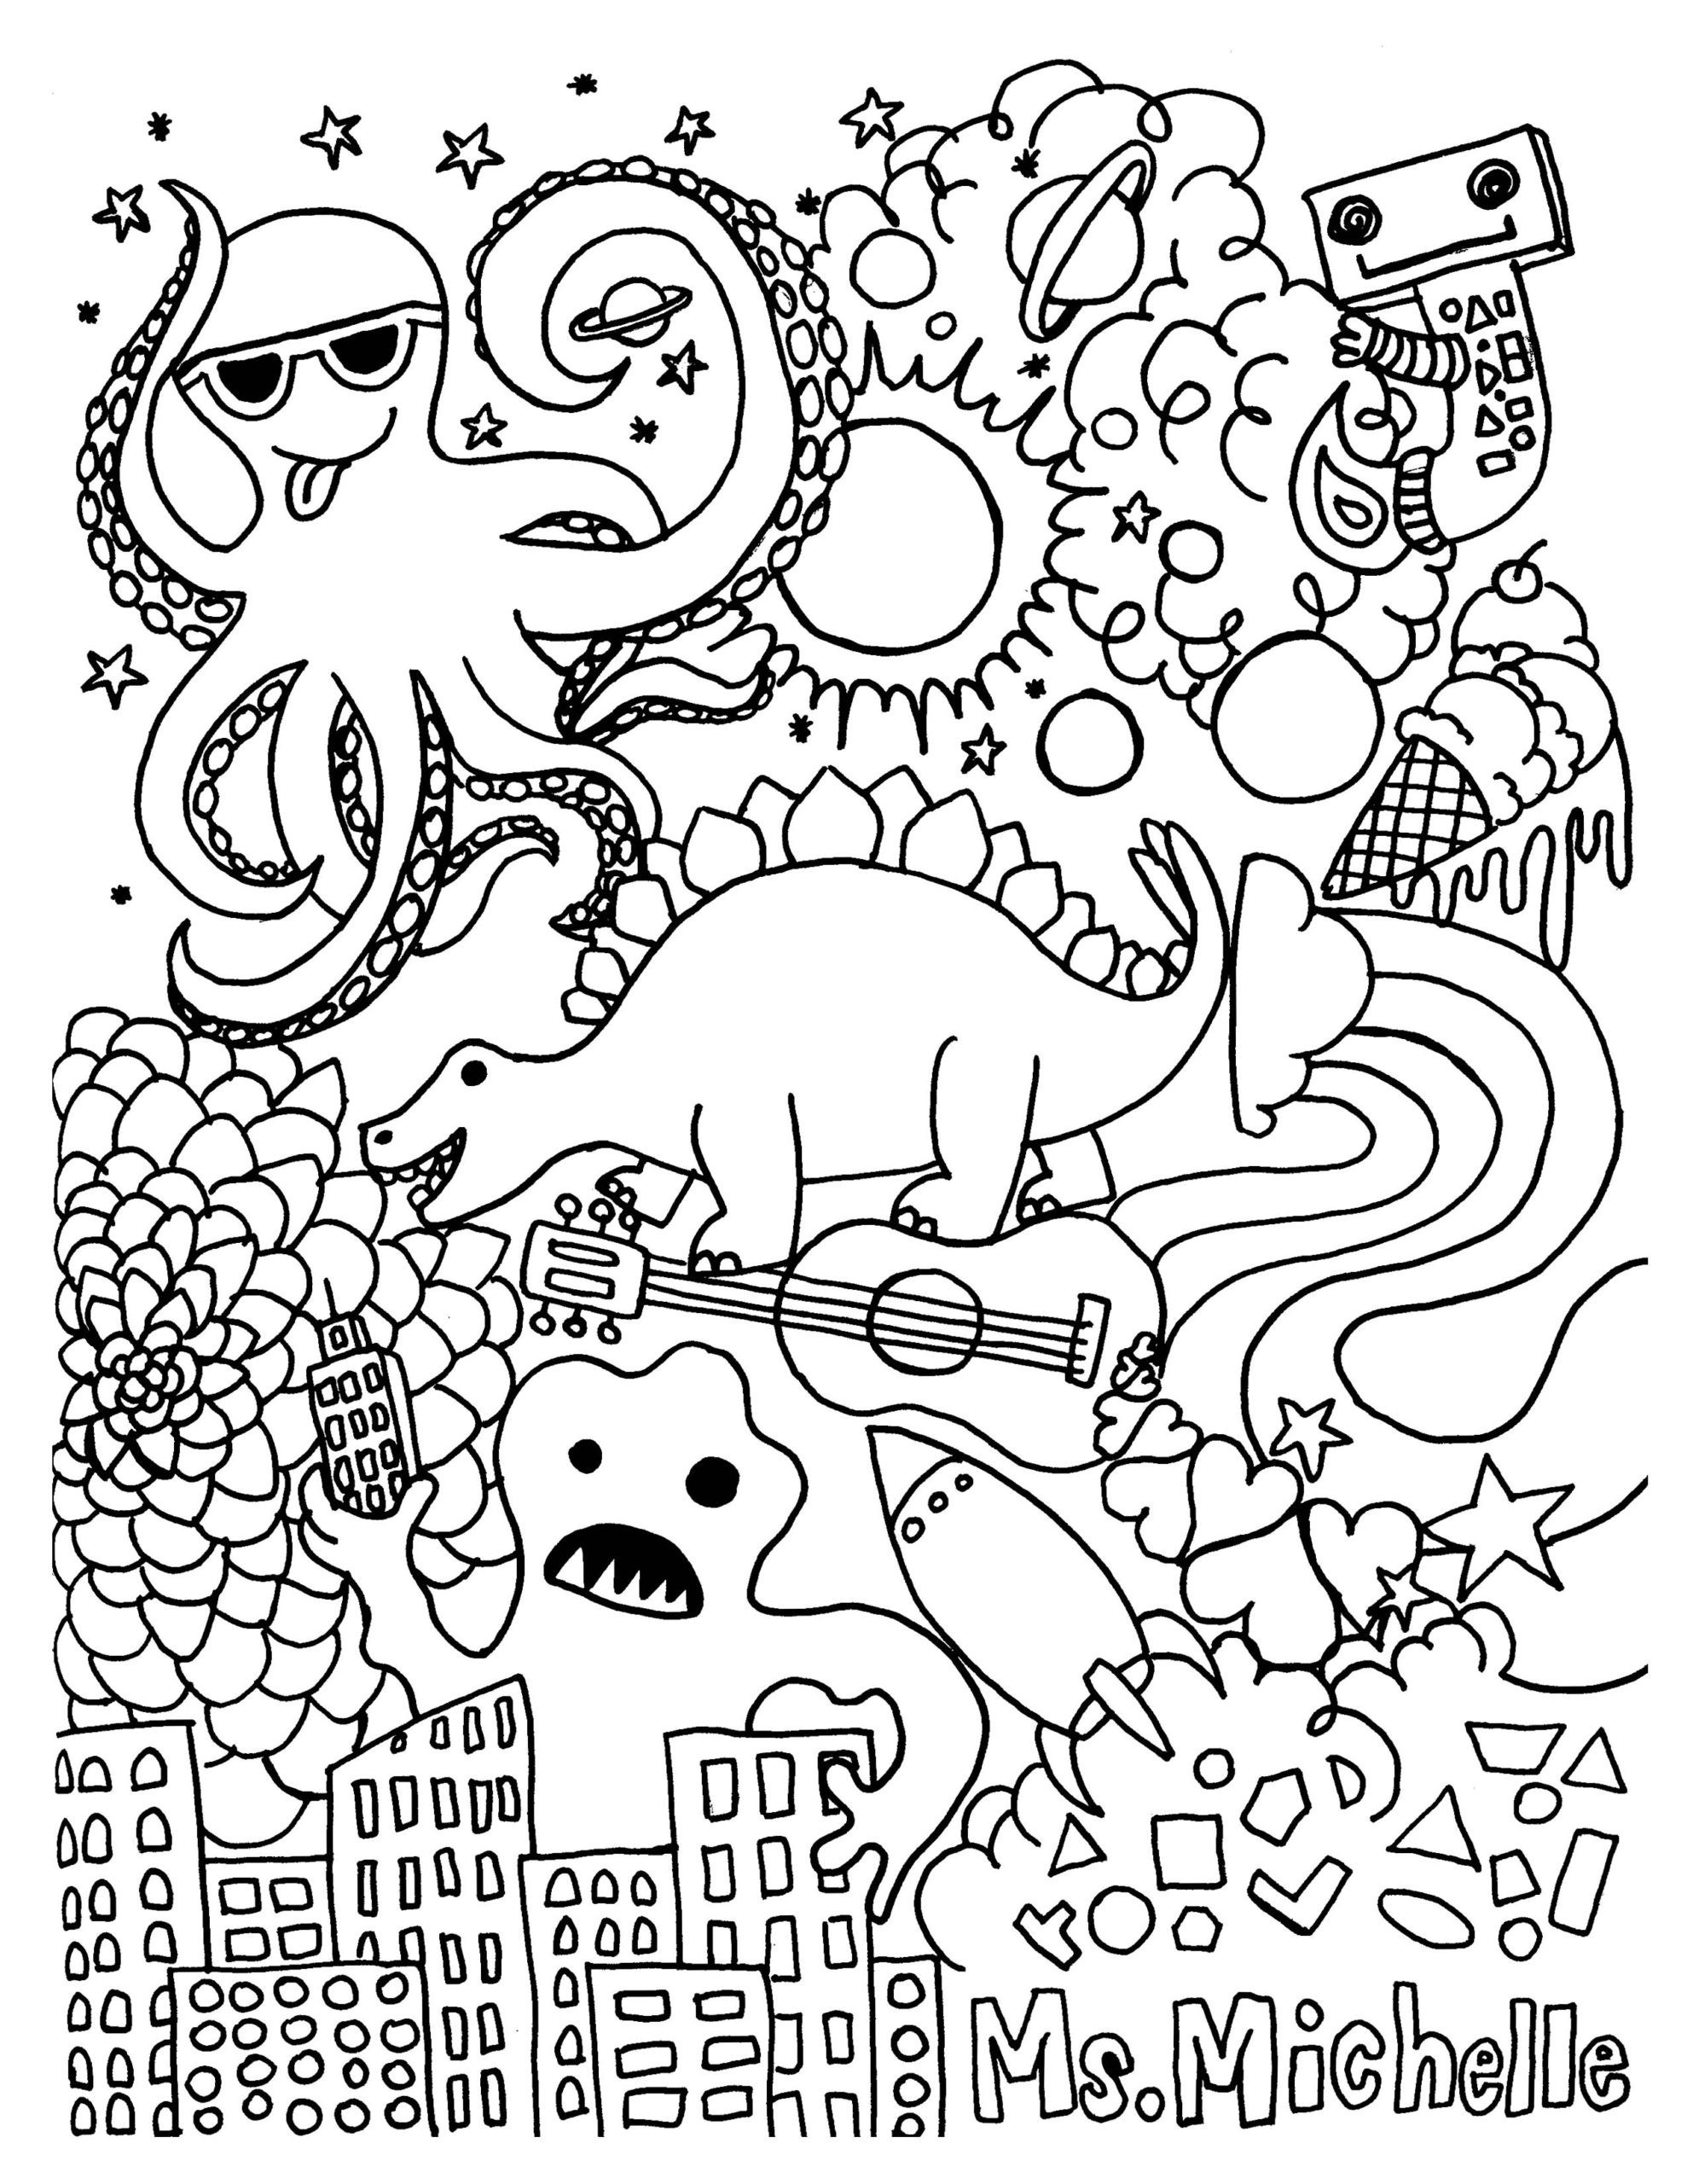 Coloring Worksheets for 3rd Grade Coloring Pages Free Printable Activity Pages for Kids